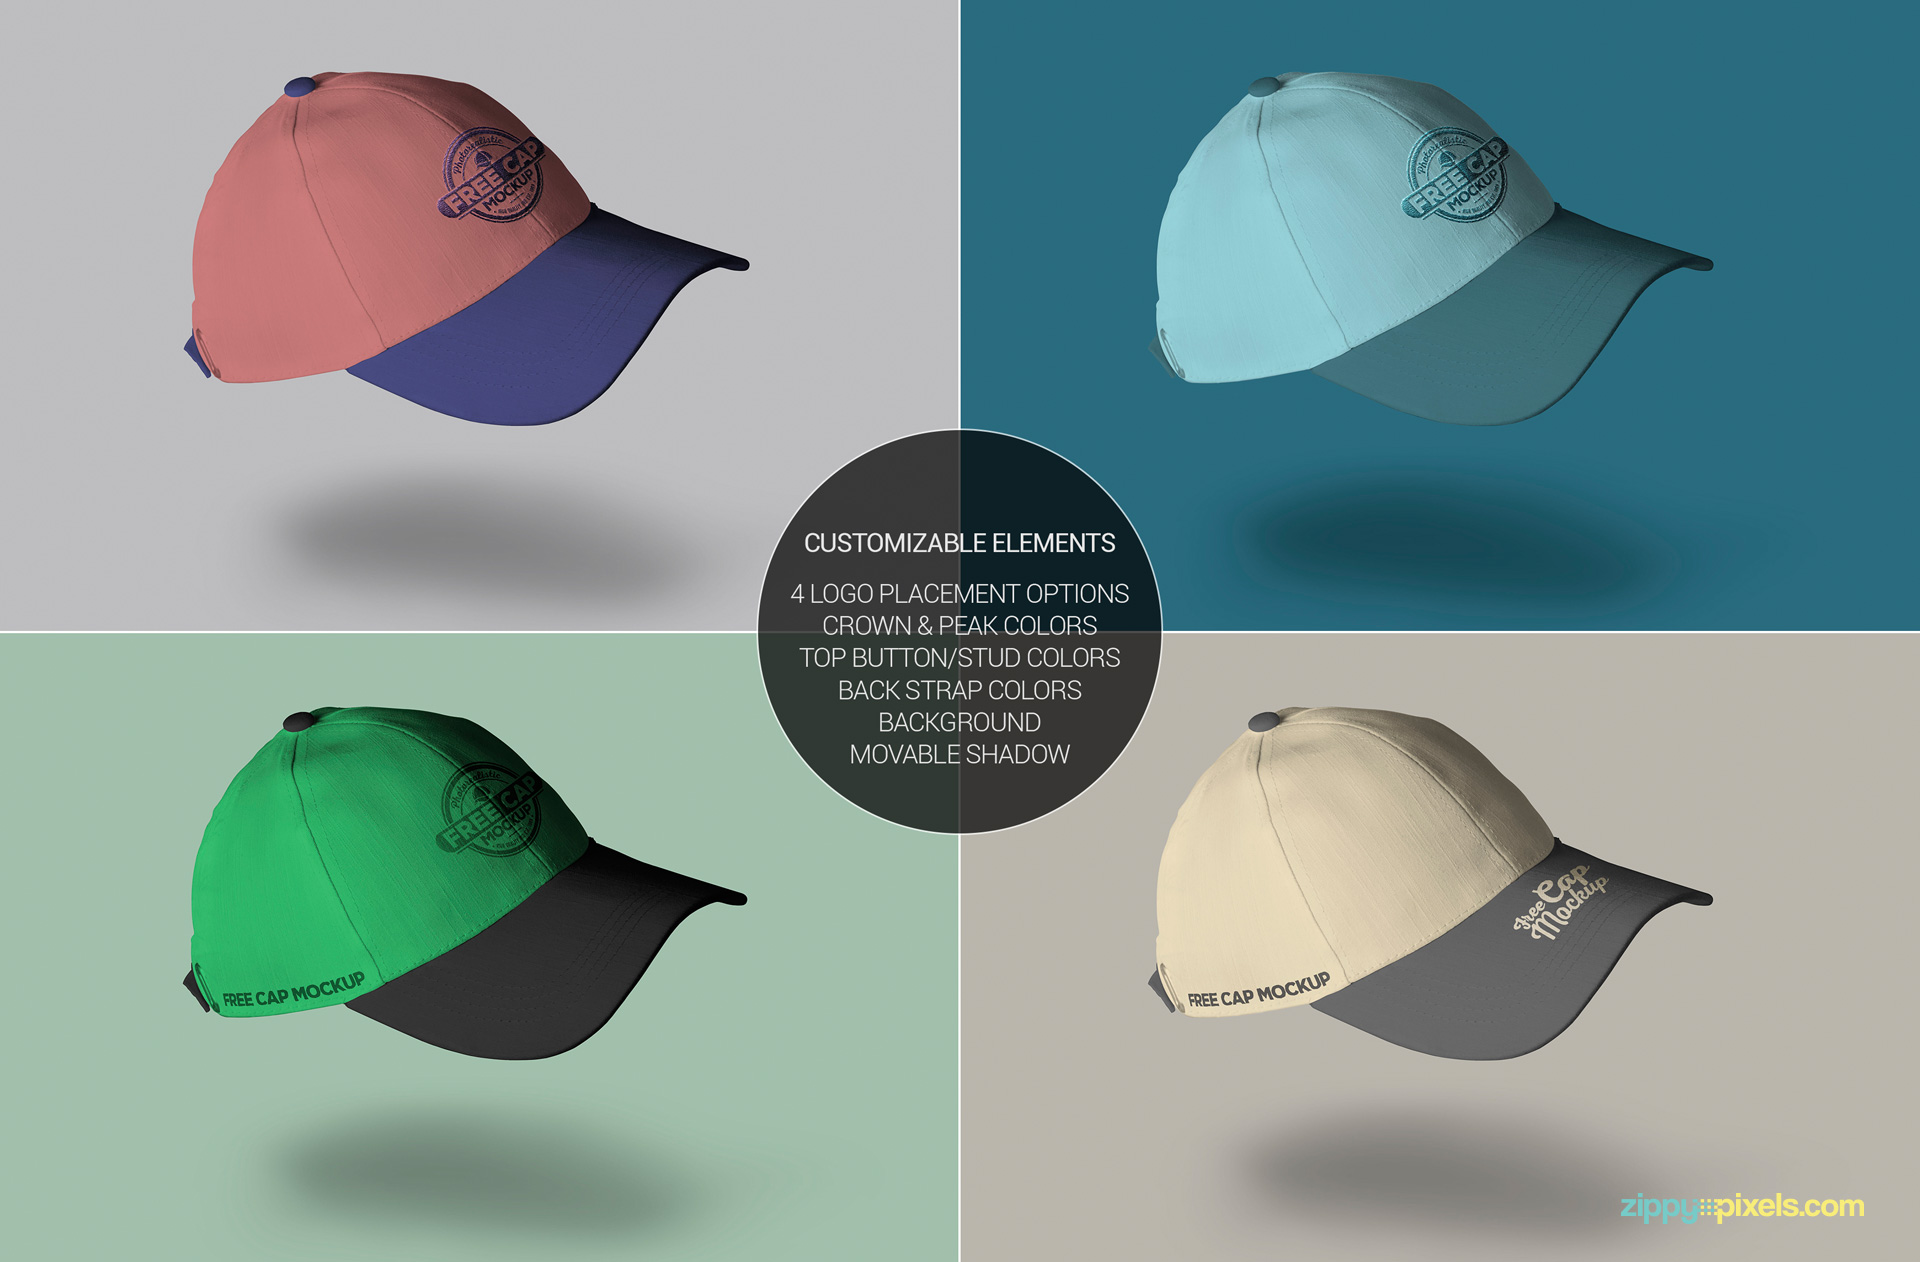 Cool free cap mockup to showcase your promotional and branding designs.